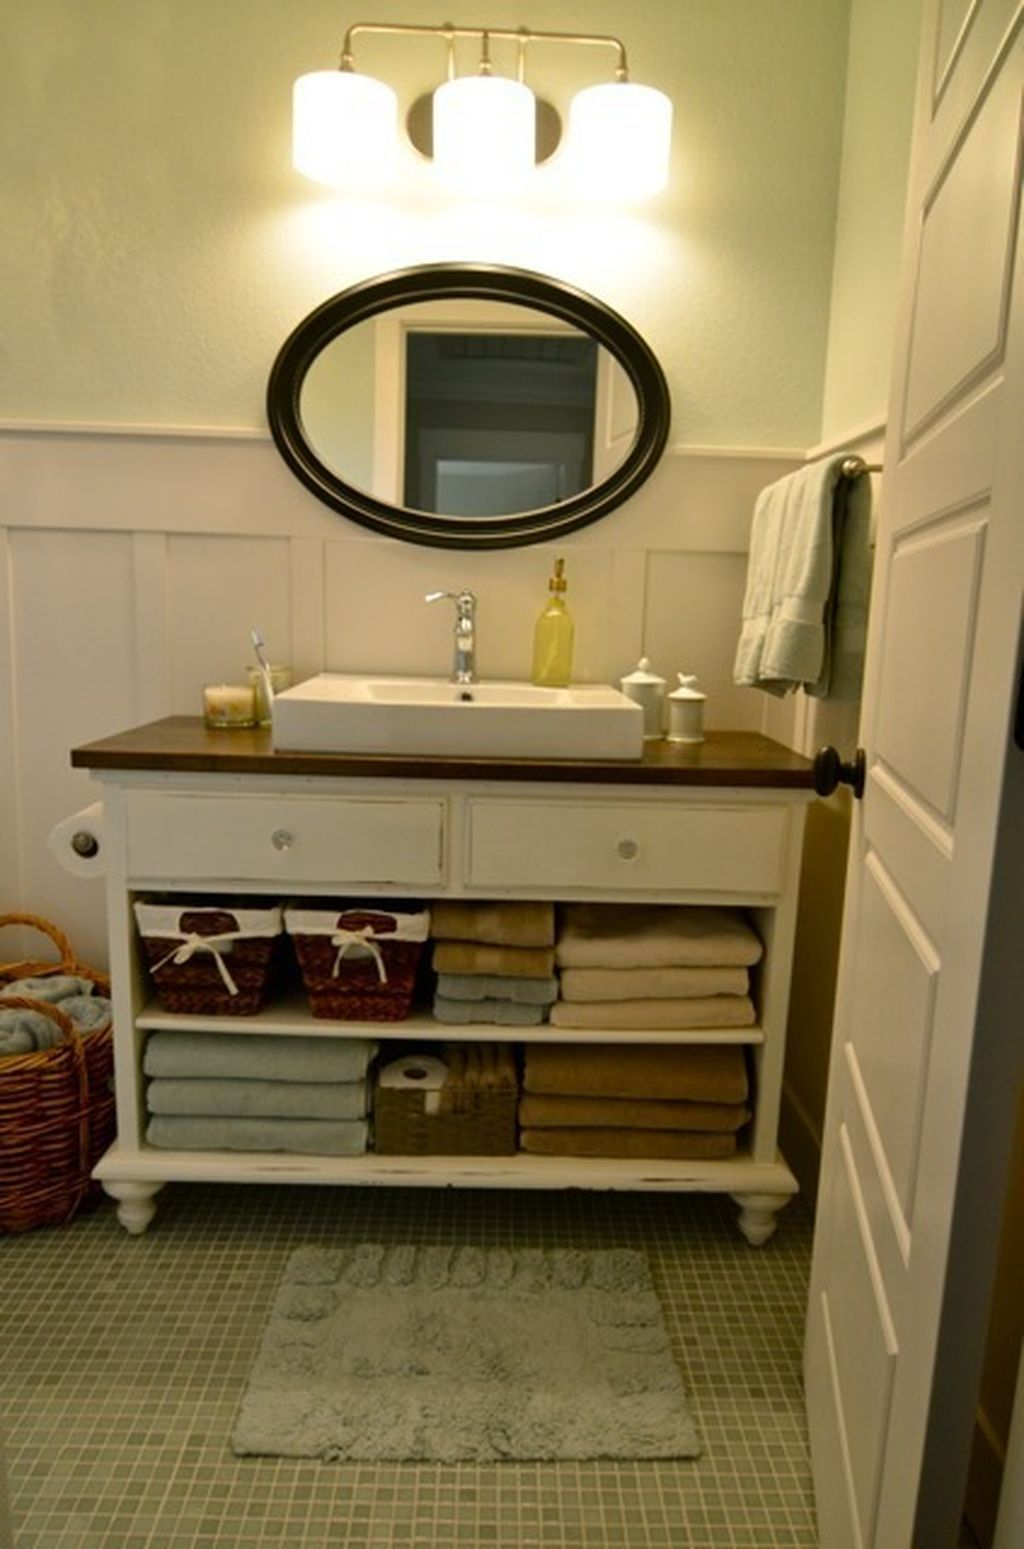 Nice 64 Cheap And Easy Diy Bathroom Vanity Makeover Ideas  Http://about Ruth.com/2017/06/07/64 Cheap And Easy Diy Bathroom Vanity  Makeover Ideas/